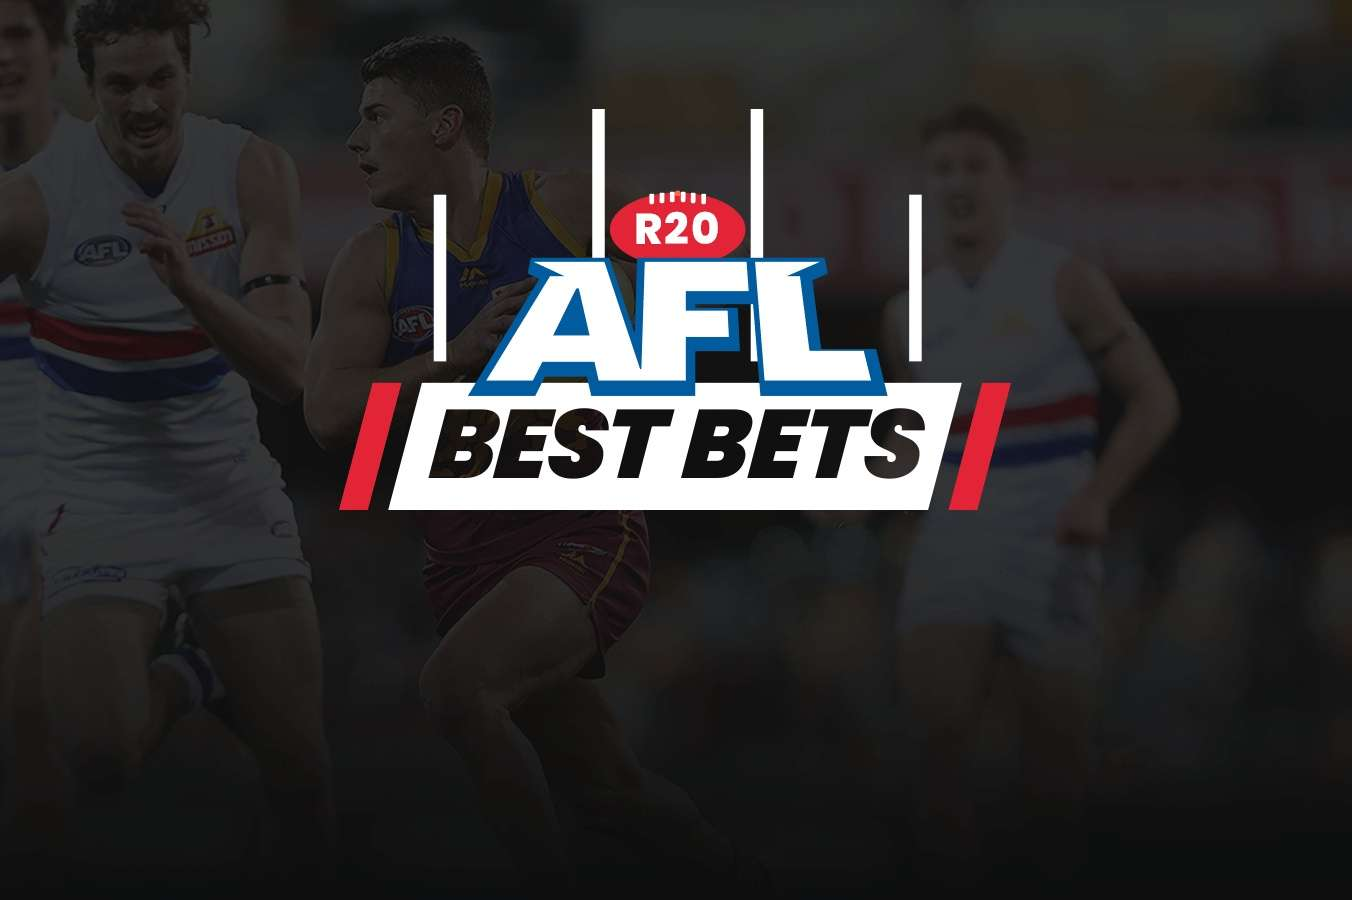 Afl betting round 20 bitcoins kaufen bargeld verschicken